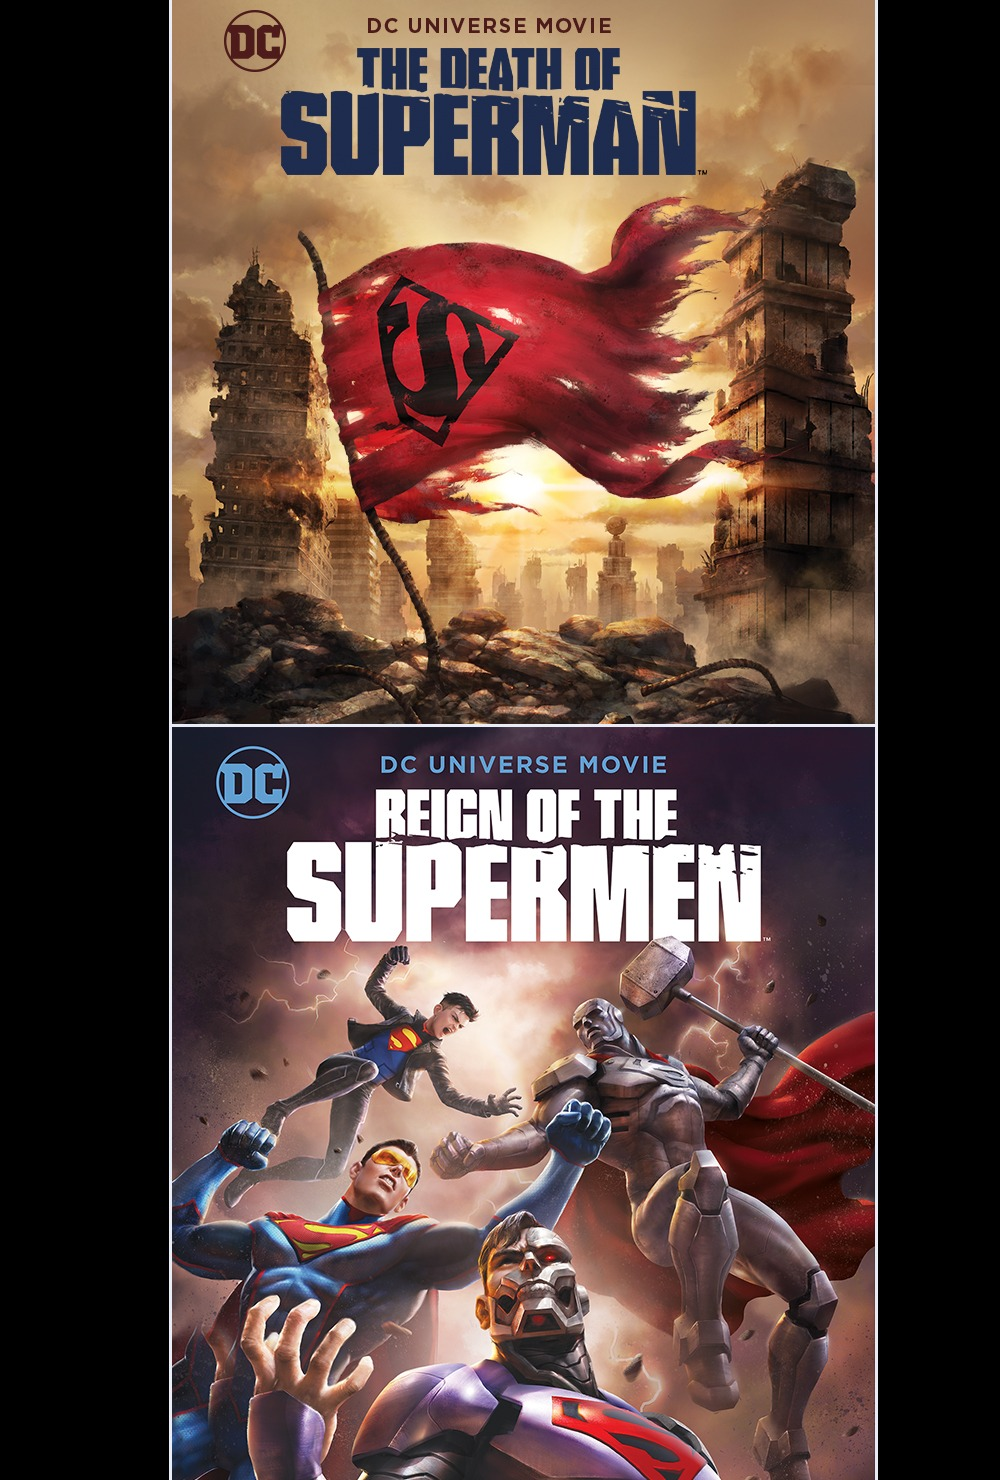 The Death of Superman + Reign of the Supermen Double Feature